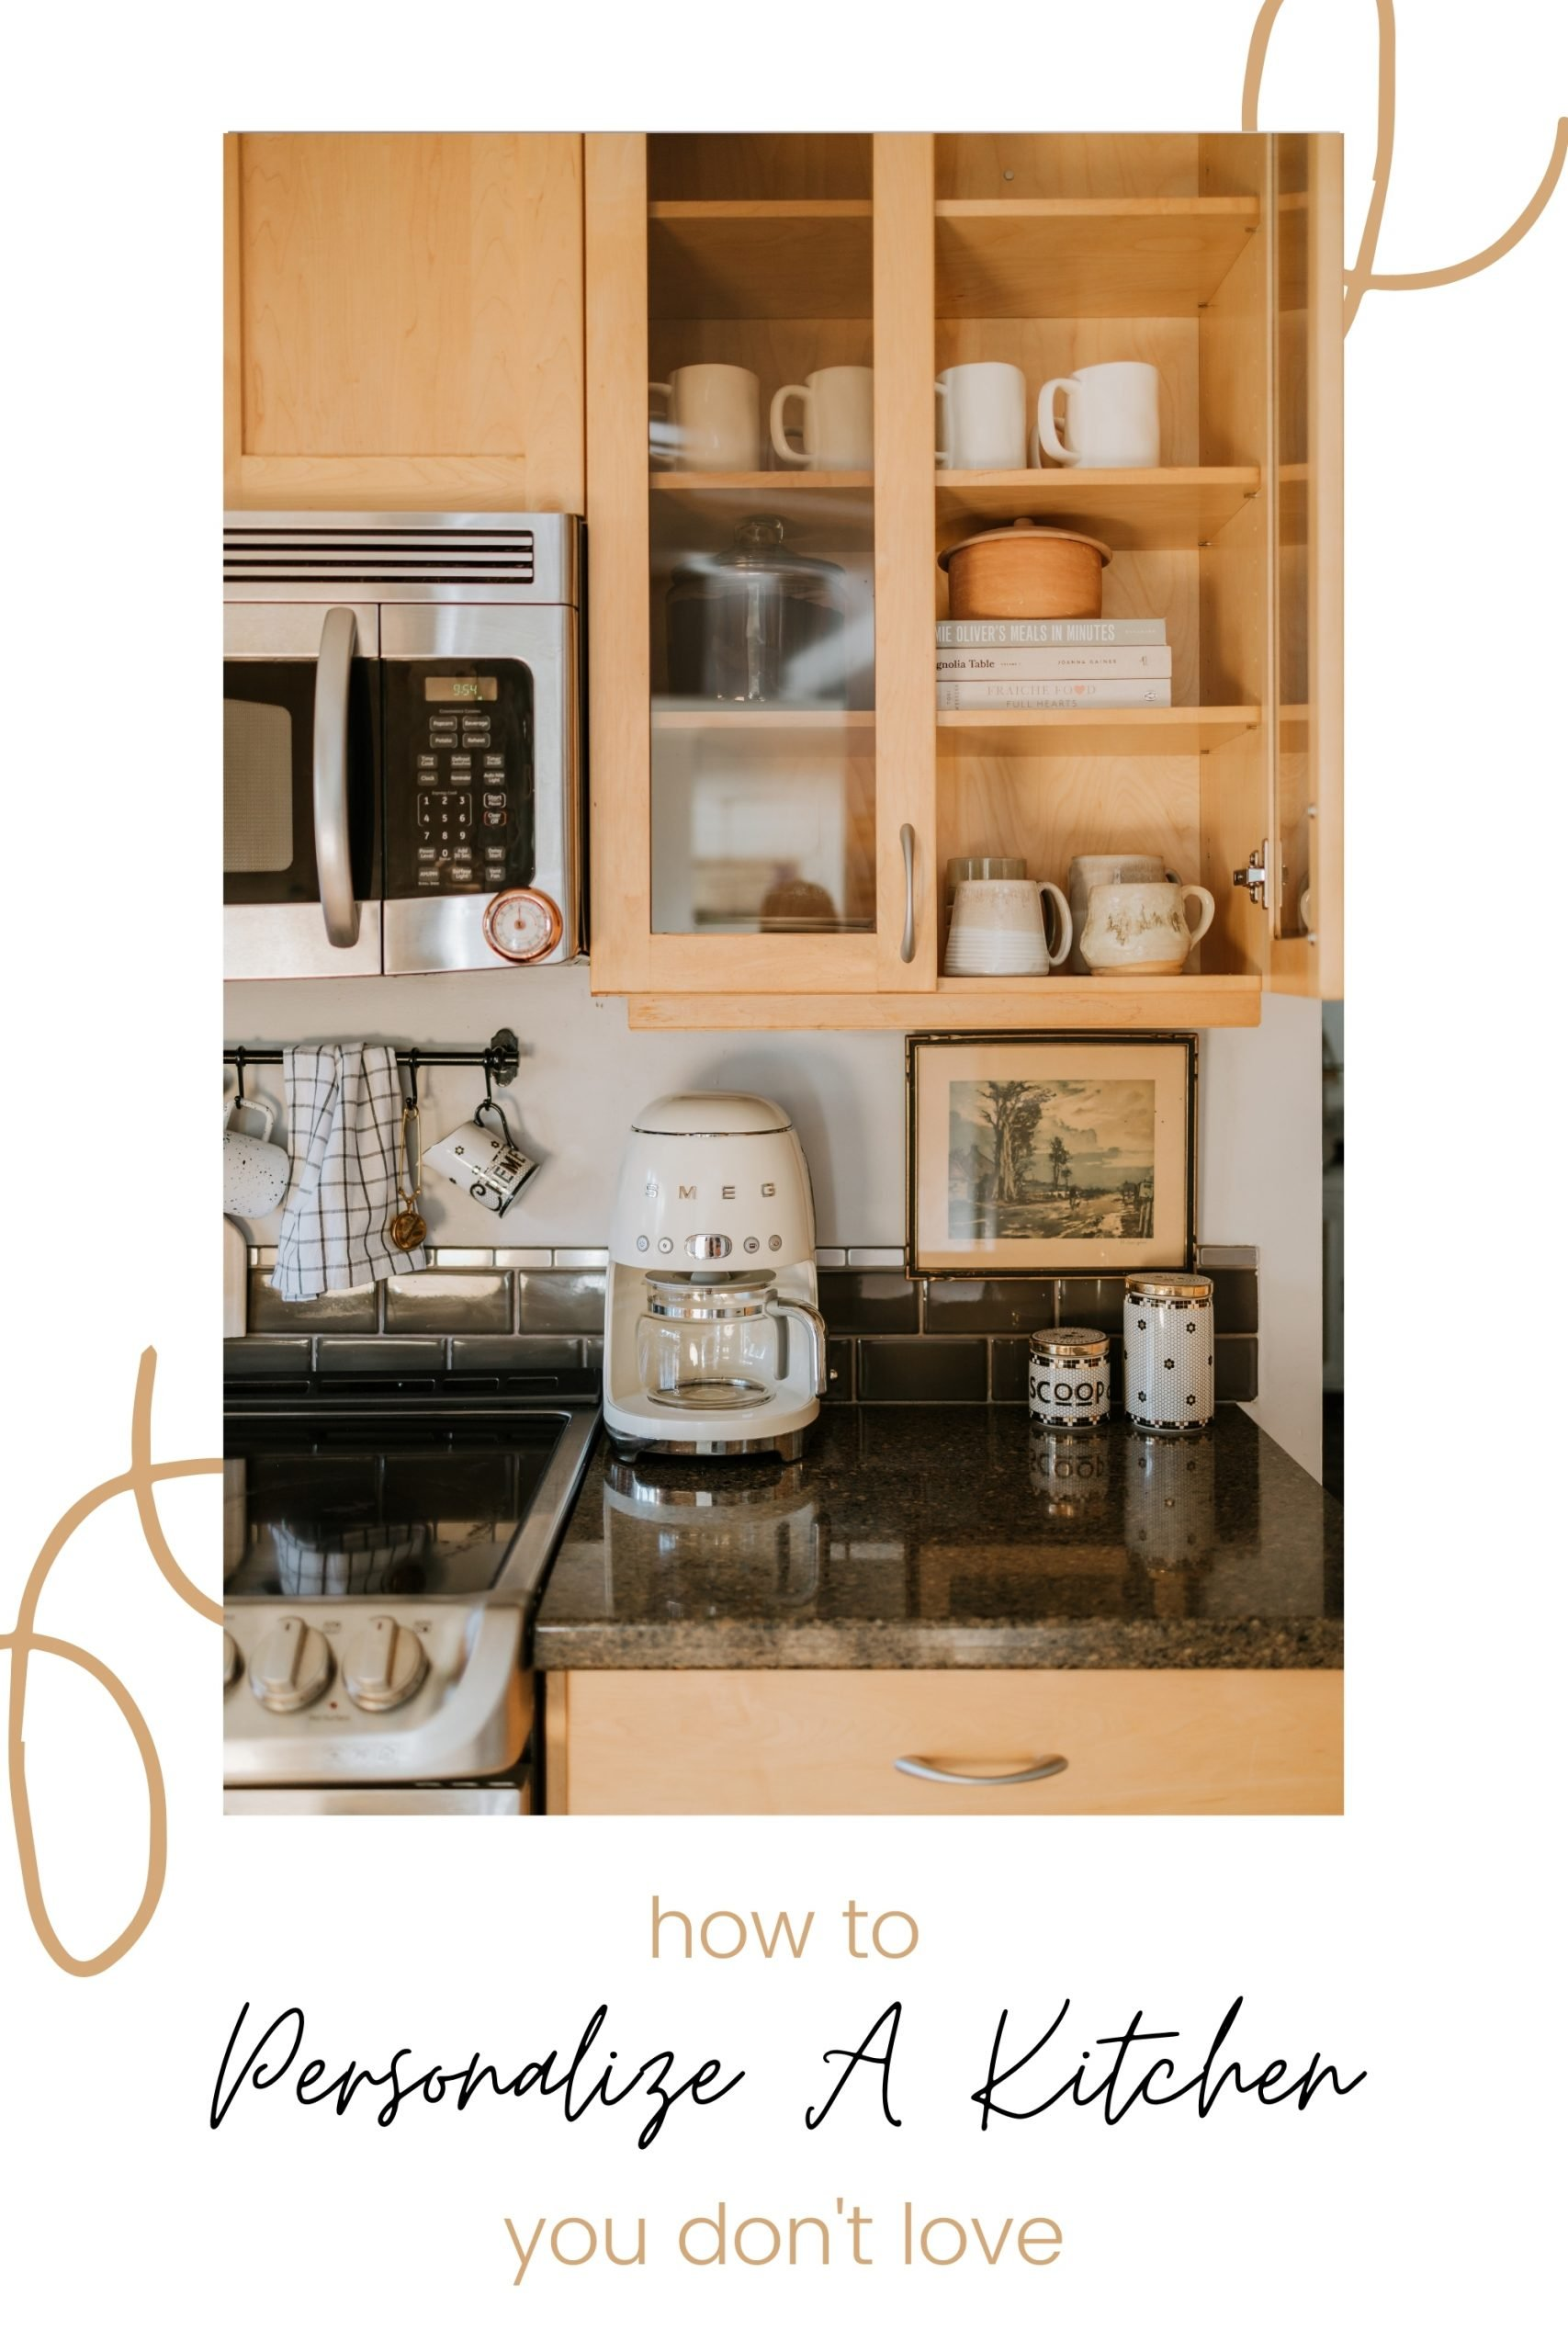 How To Personalize A Kitchen You Don't Love. How To Style A Kitchen that isn't your style.